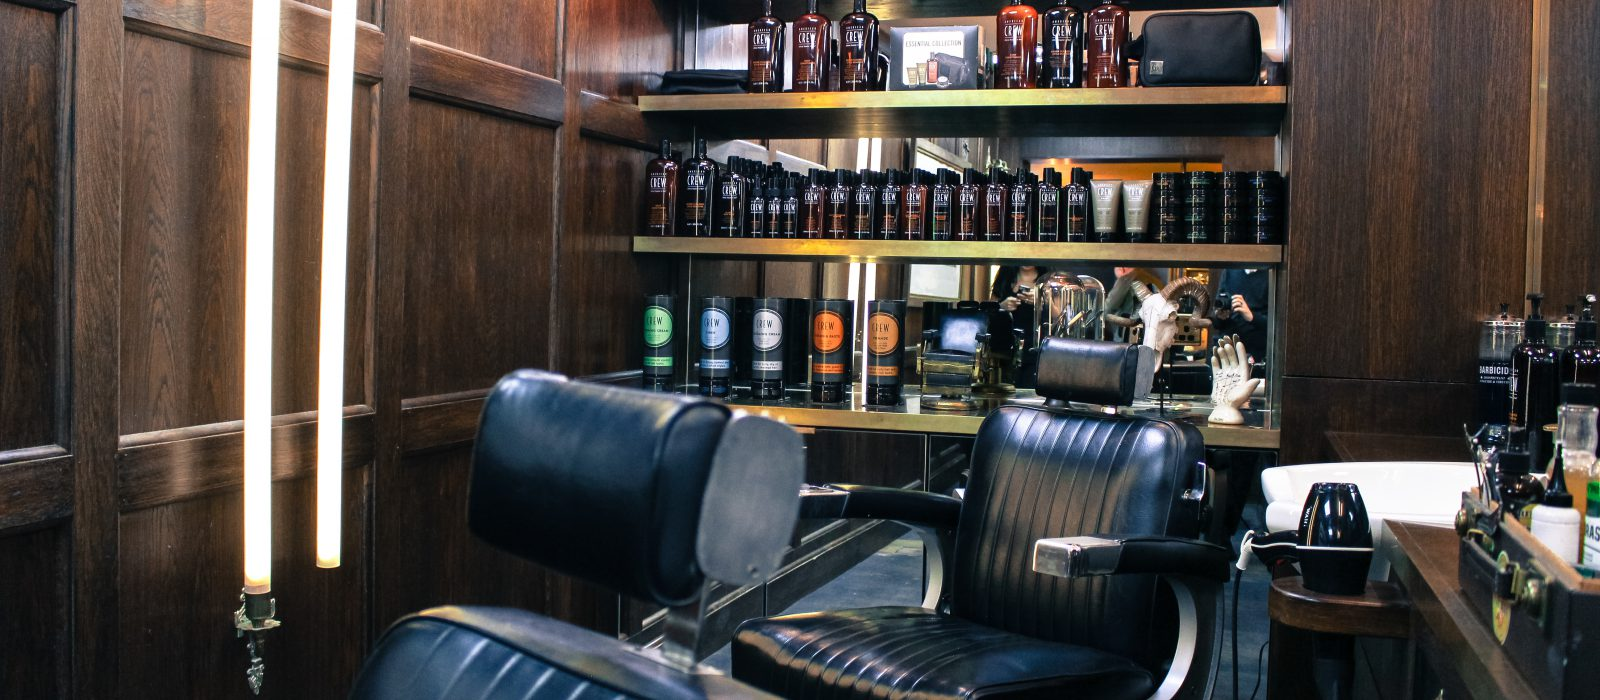 https://www.portersbarbers.co.uk/wp-content/uploads/DULWICH-GALLERY-1-e1483429570407.jpg